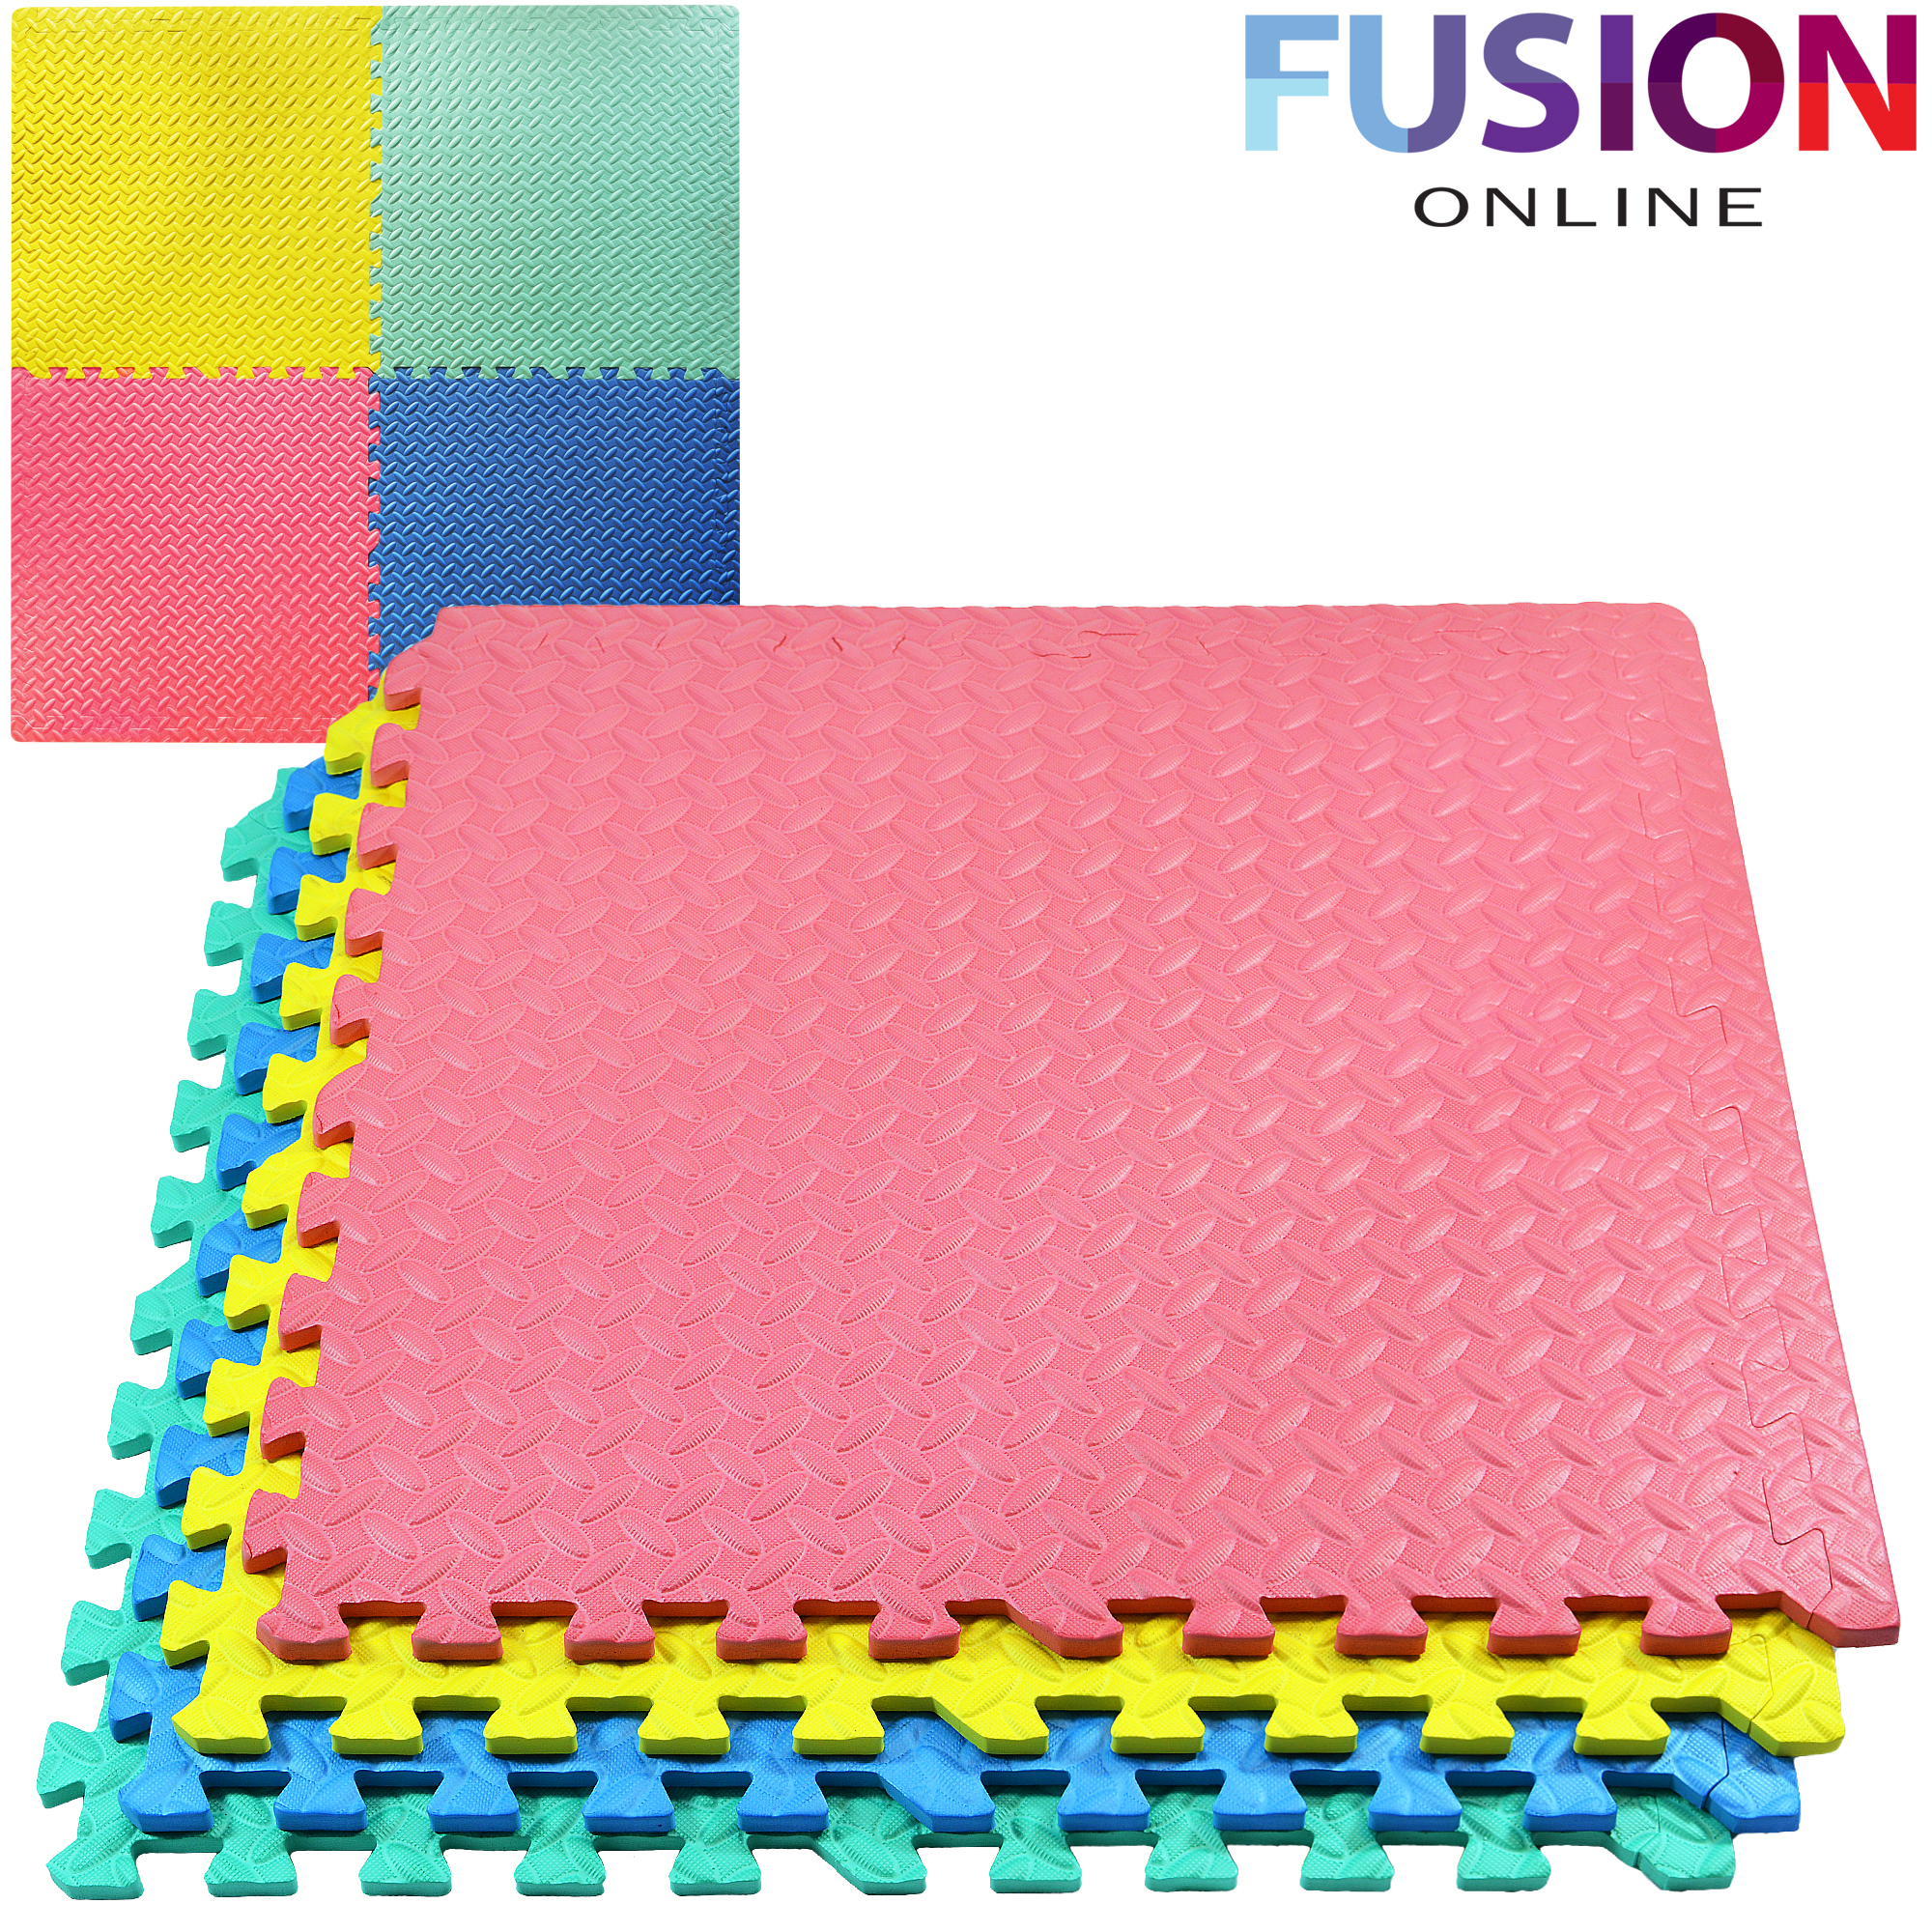 mats play baby from yvonna kids eva new product foam covering mat floor puzzle dhgate pile com gym